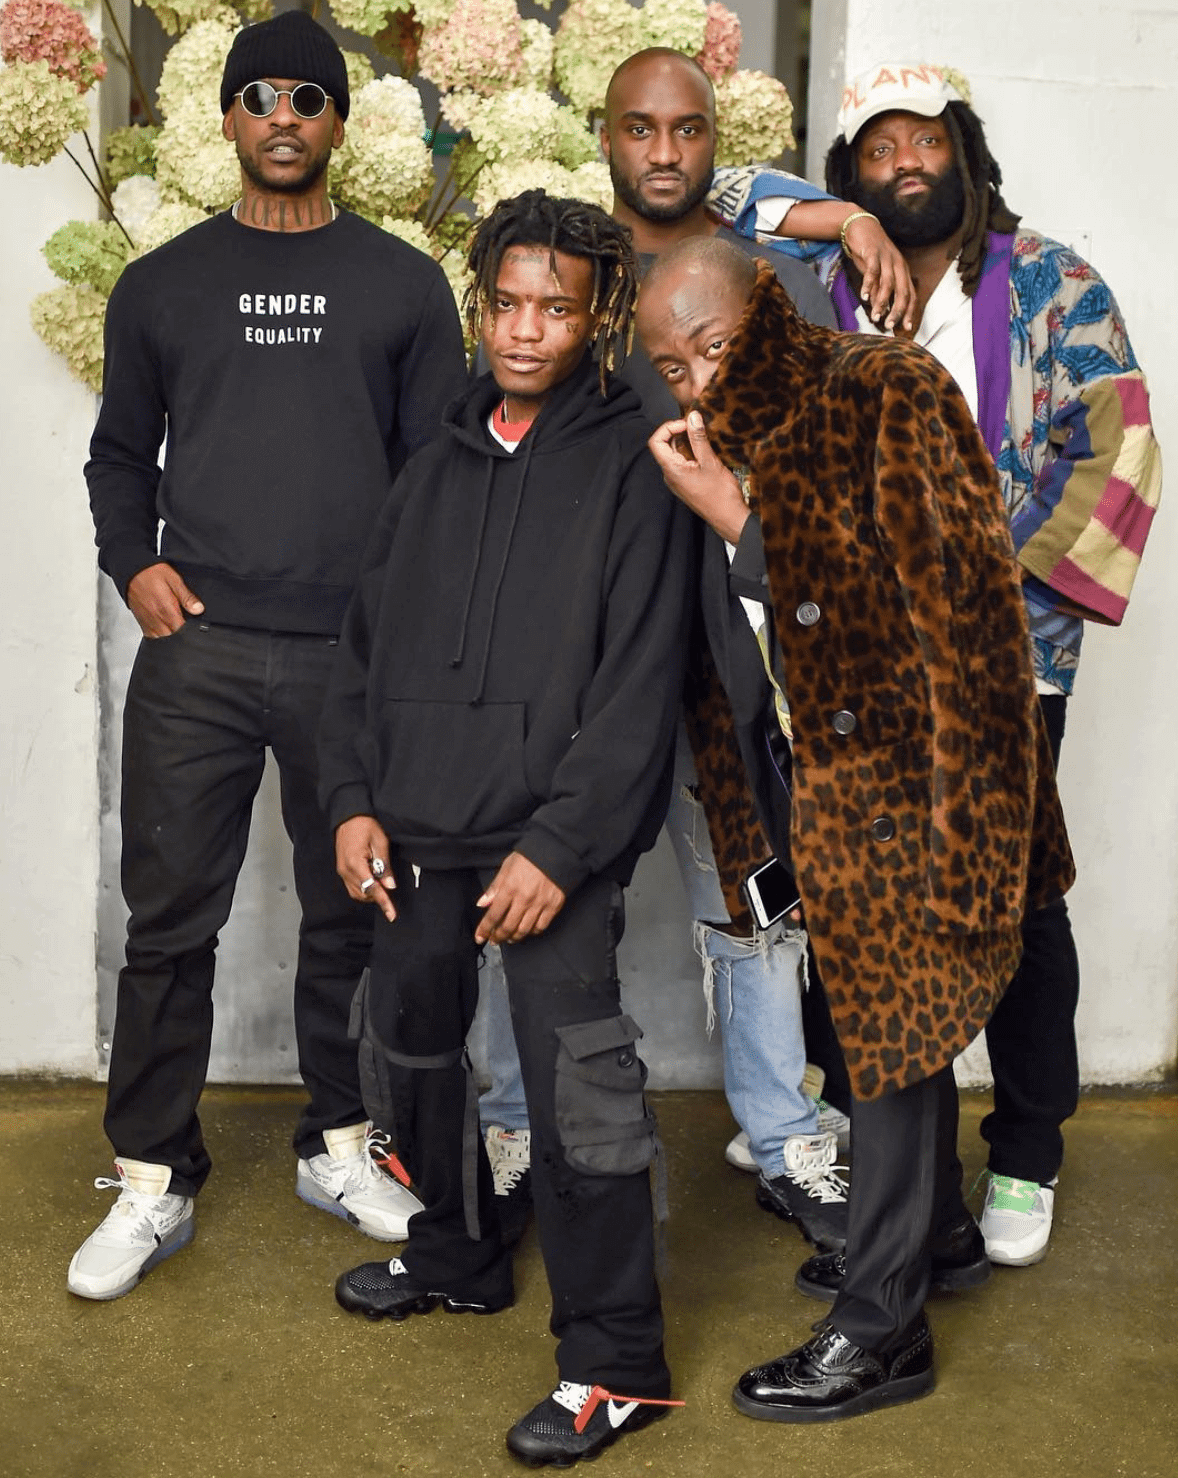 Skepta in Nike The 10 Air Max 90 & Ian Connor in the Nike The 10 Air Vapormax &Virgil Abloh in the Nike The 10 Air Vapormax & Tremaine Emory in the Nike The 10 Air Max 90